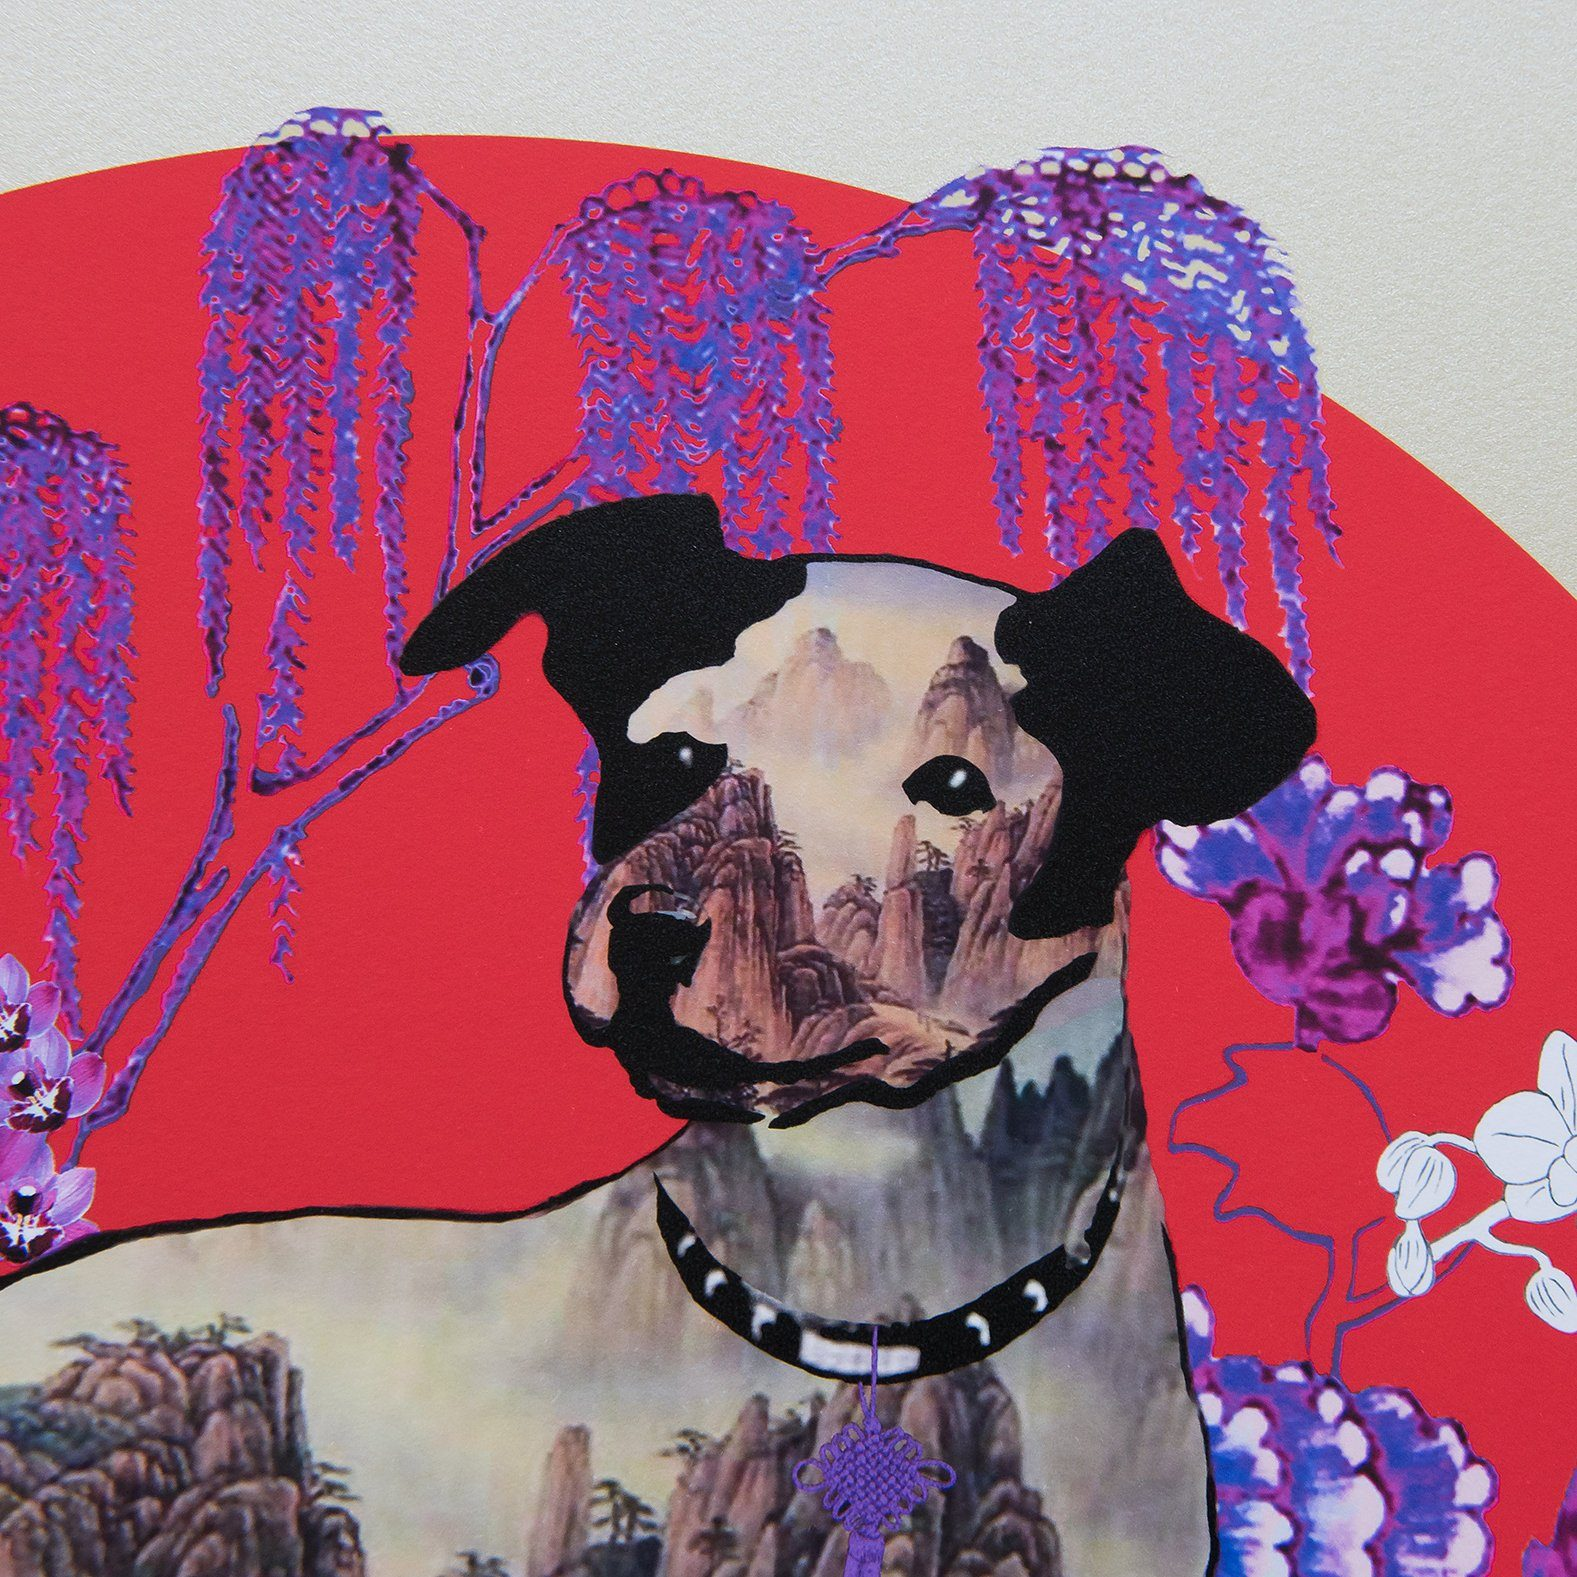 Year of the Dog Print - Special Edition (Pre-Order) - Local Prints - Hollis Carney Art - Naiise